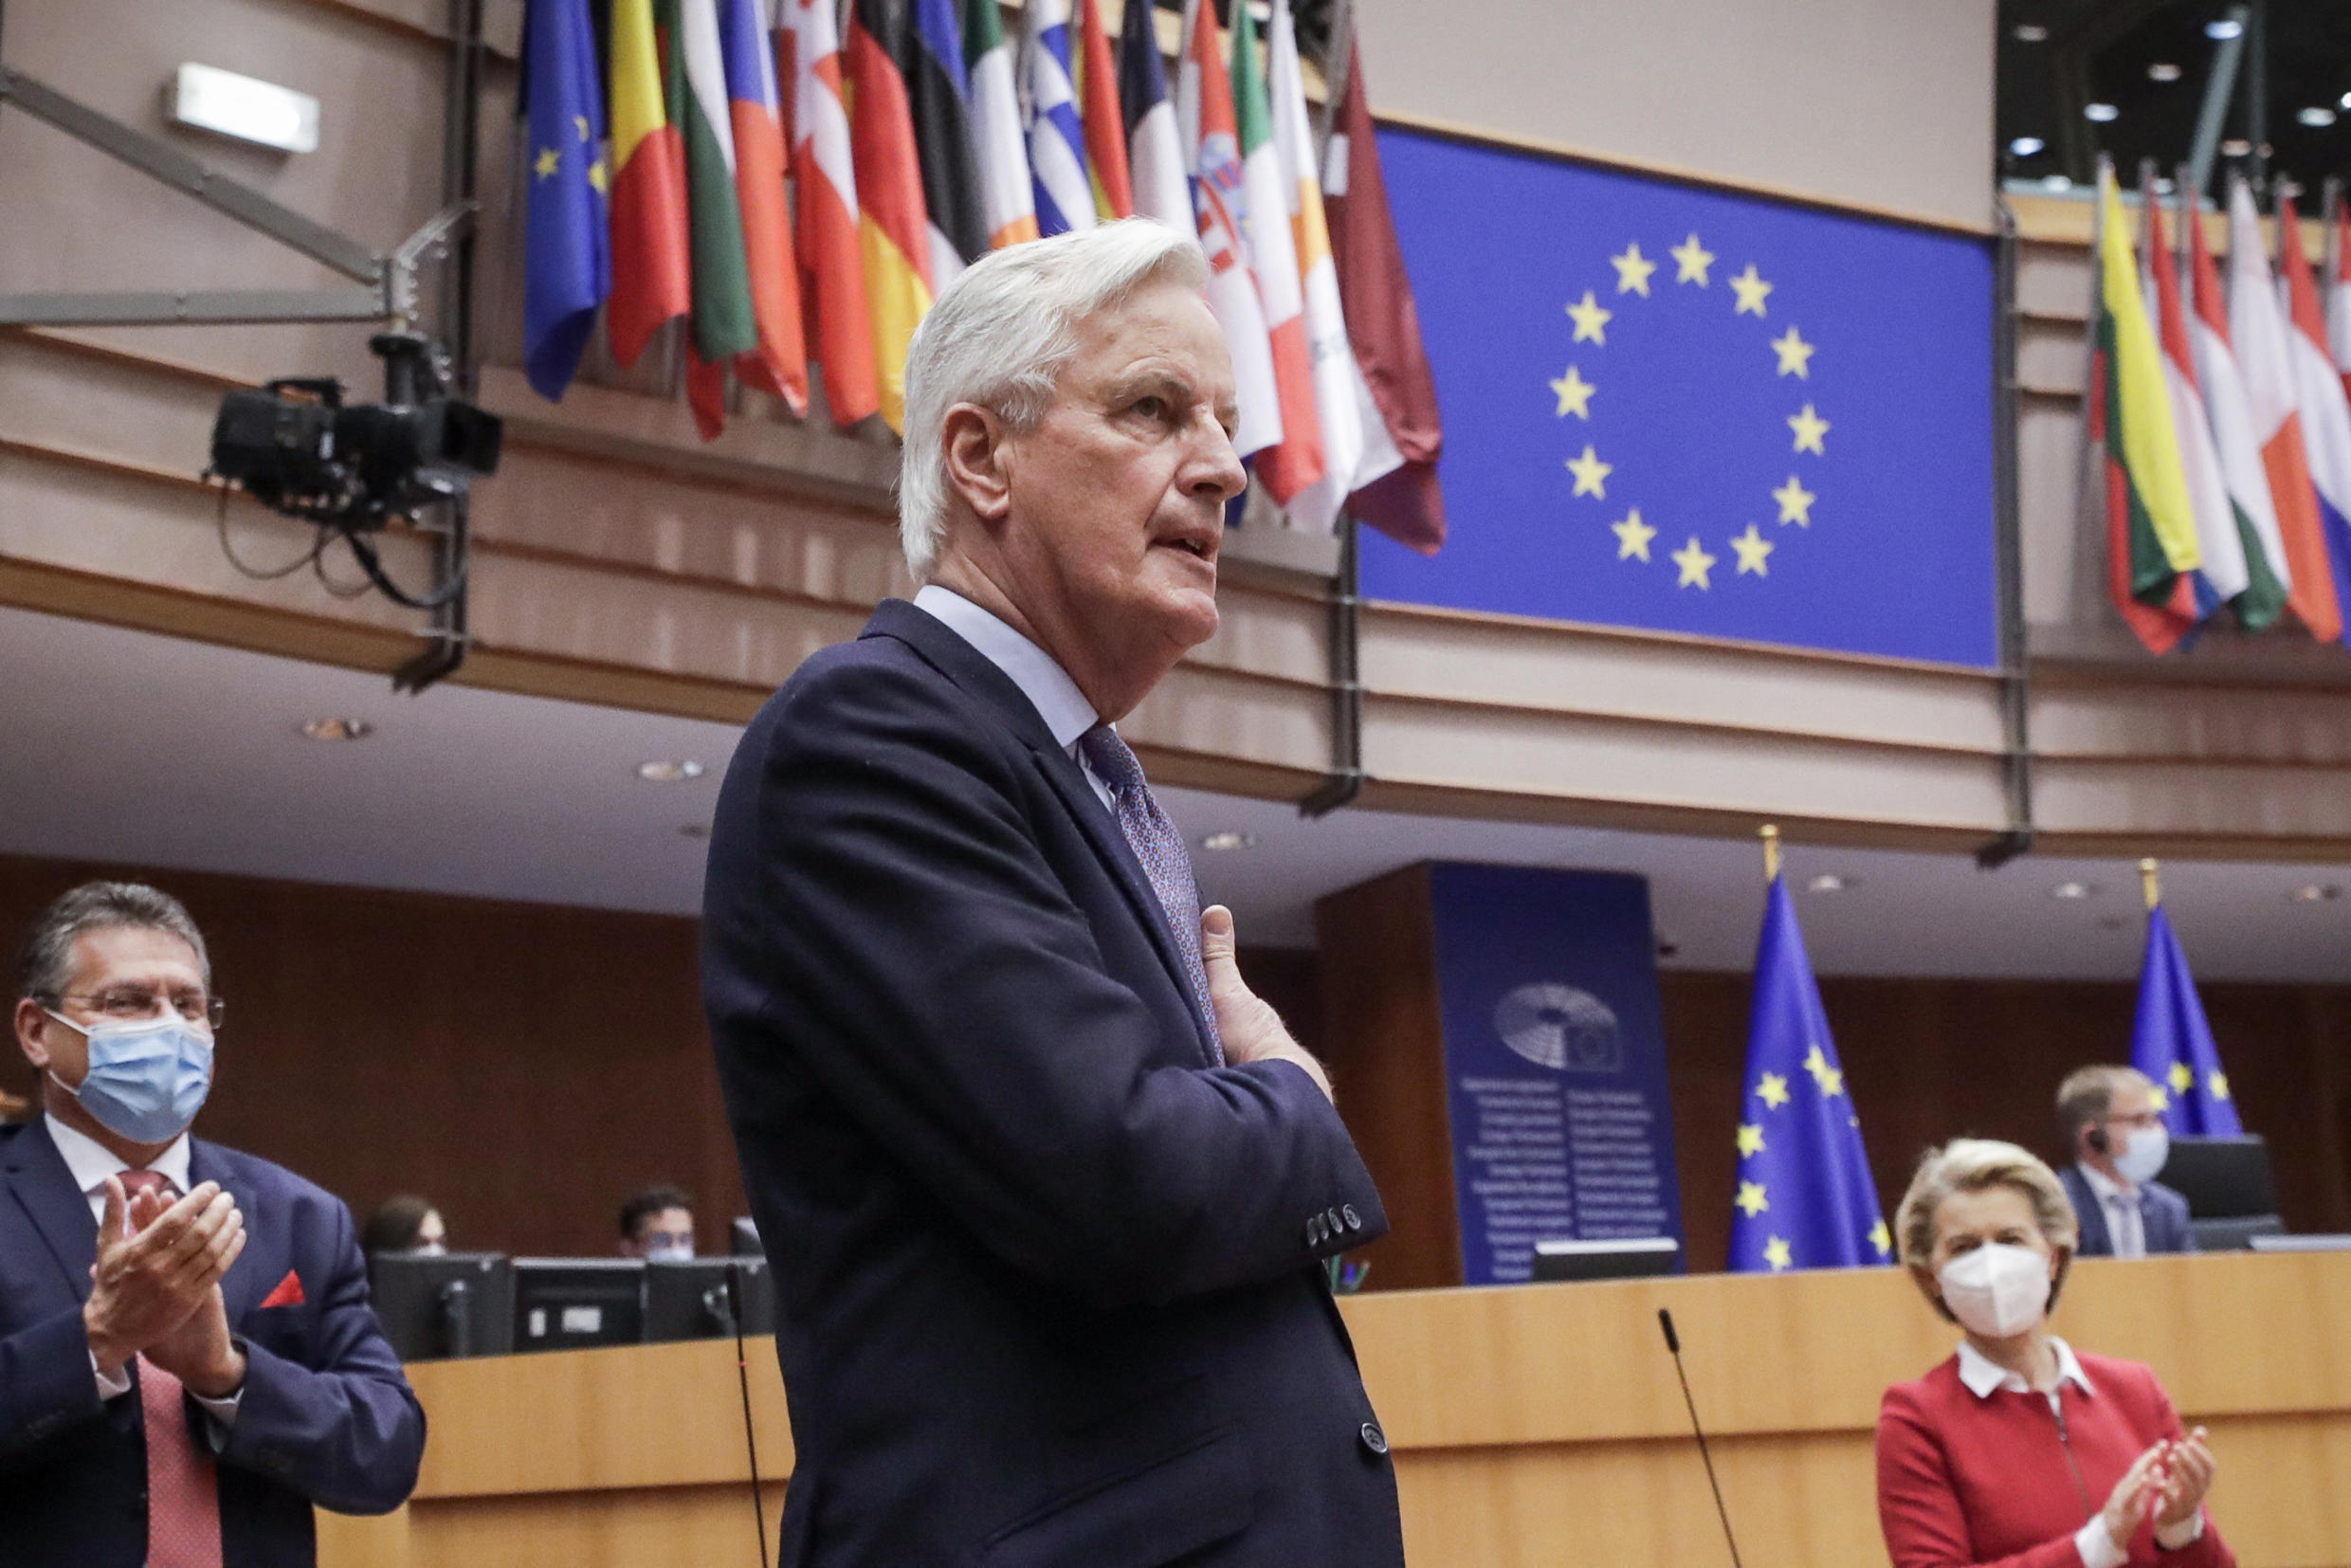 union-europenne-parlement-vote-accord-post-brexit-barnier